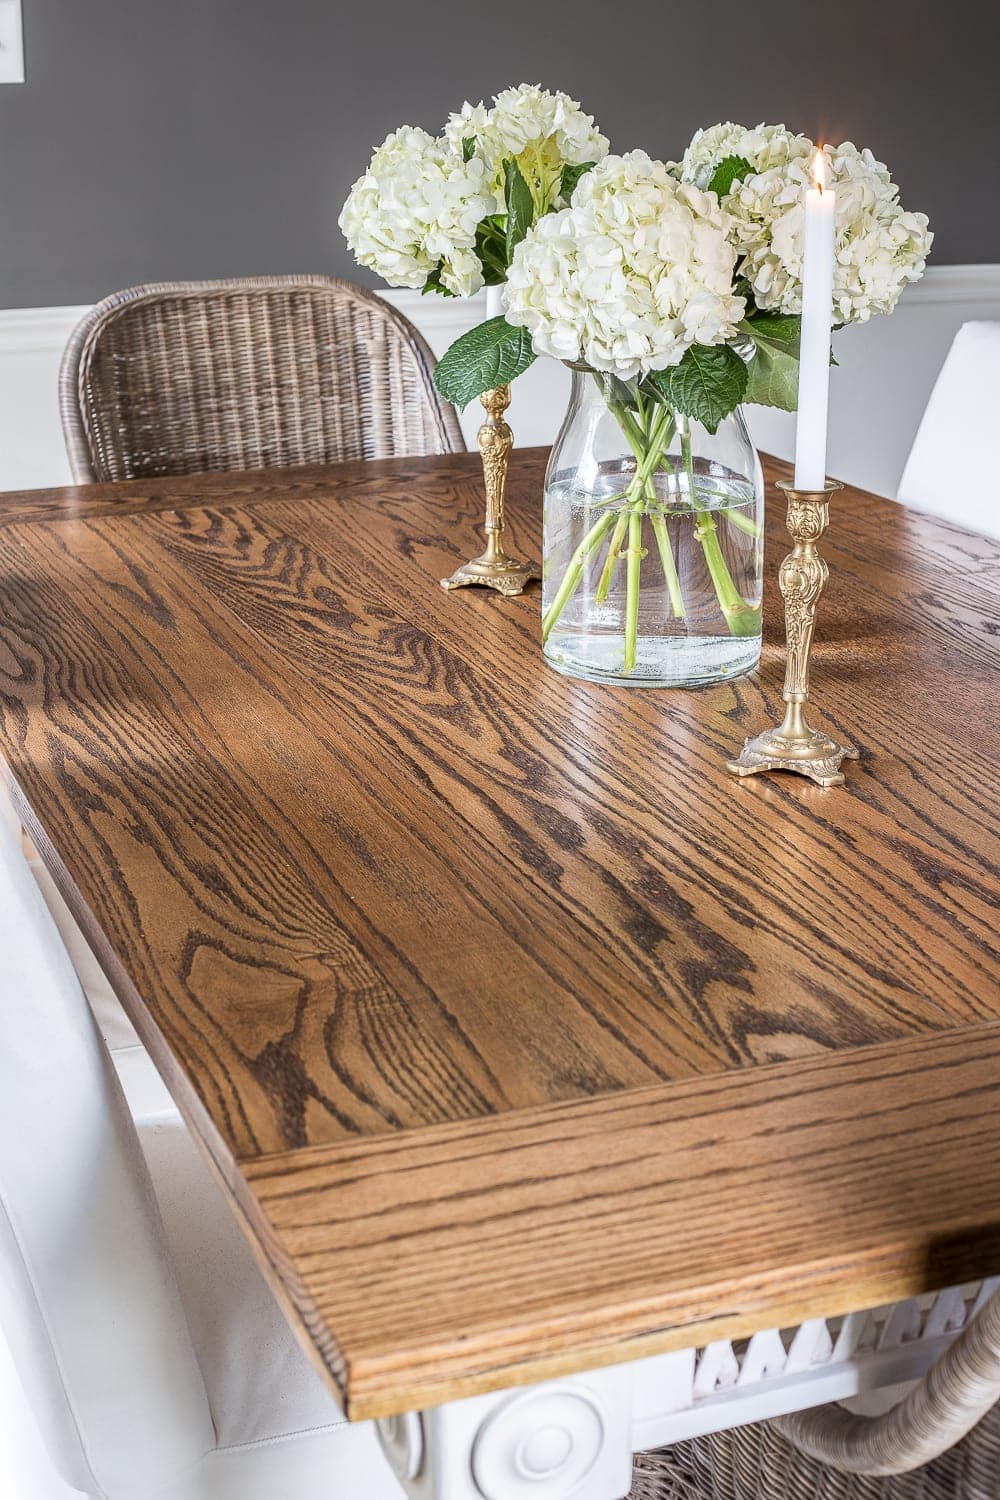 Dining table top Revolving Tutorial For How To Build Retrofitted Table Top To Fit Over Any Existing Table Blesser House Diy Retrofitted Dining Table Top Blesser House